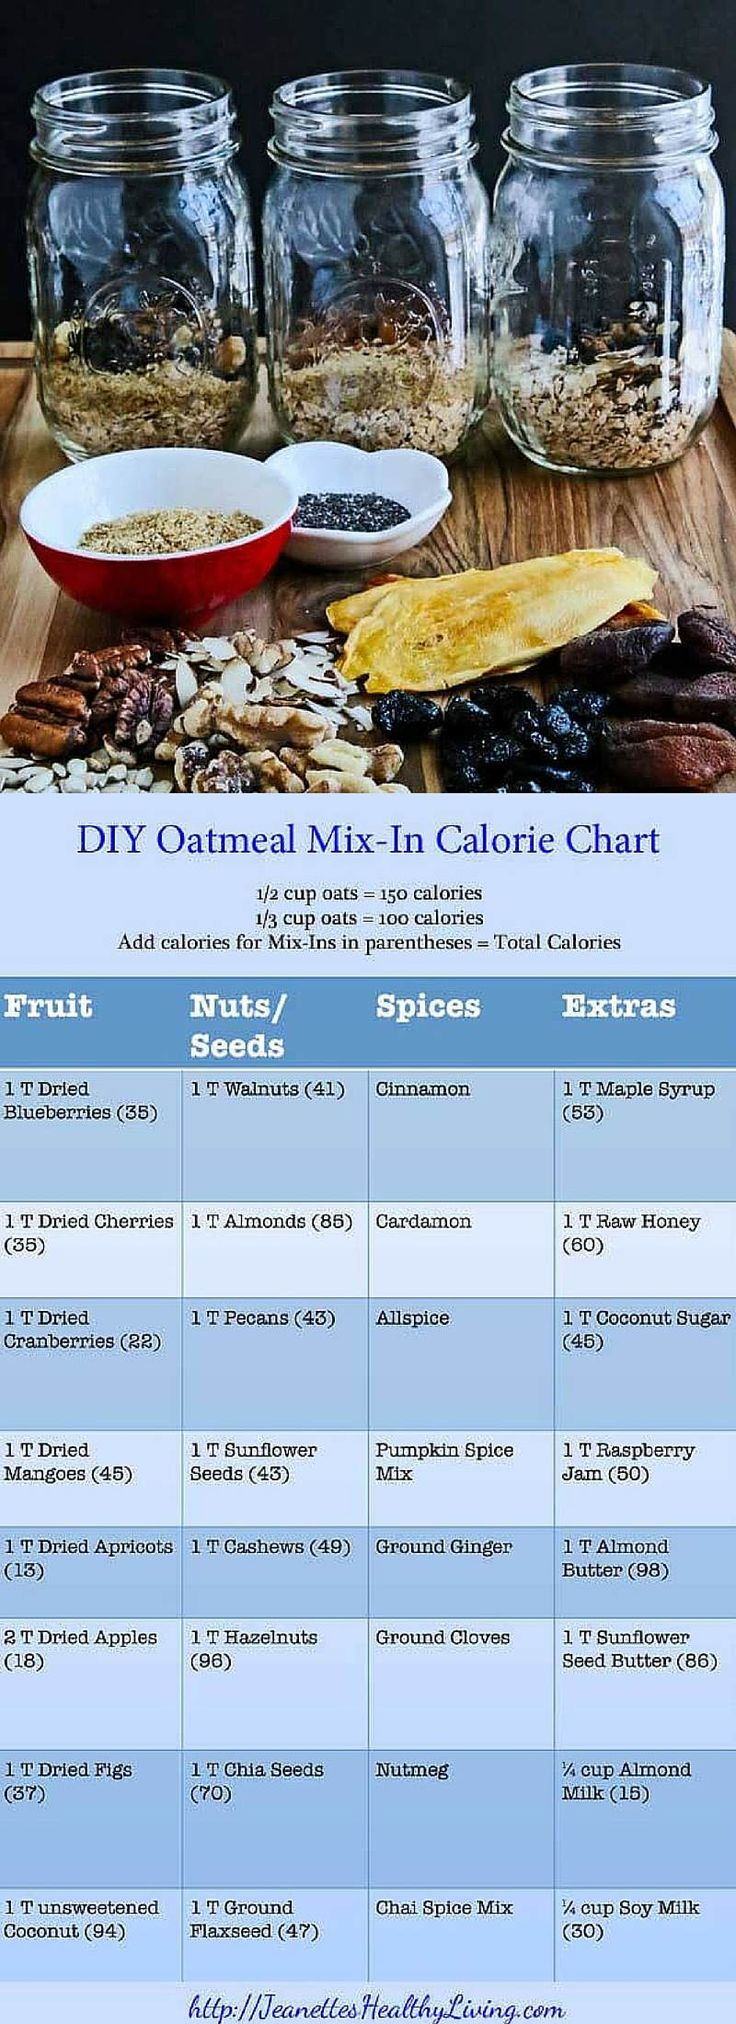 DIY Homemade Instant Oatmeal in a Jar Recipes, with calorie count chart - Jeanette's Healthy Living ~ http://jeanetteshealthyliving.com